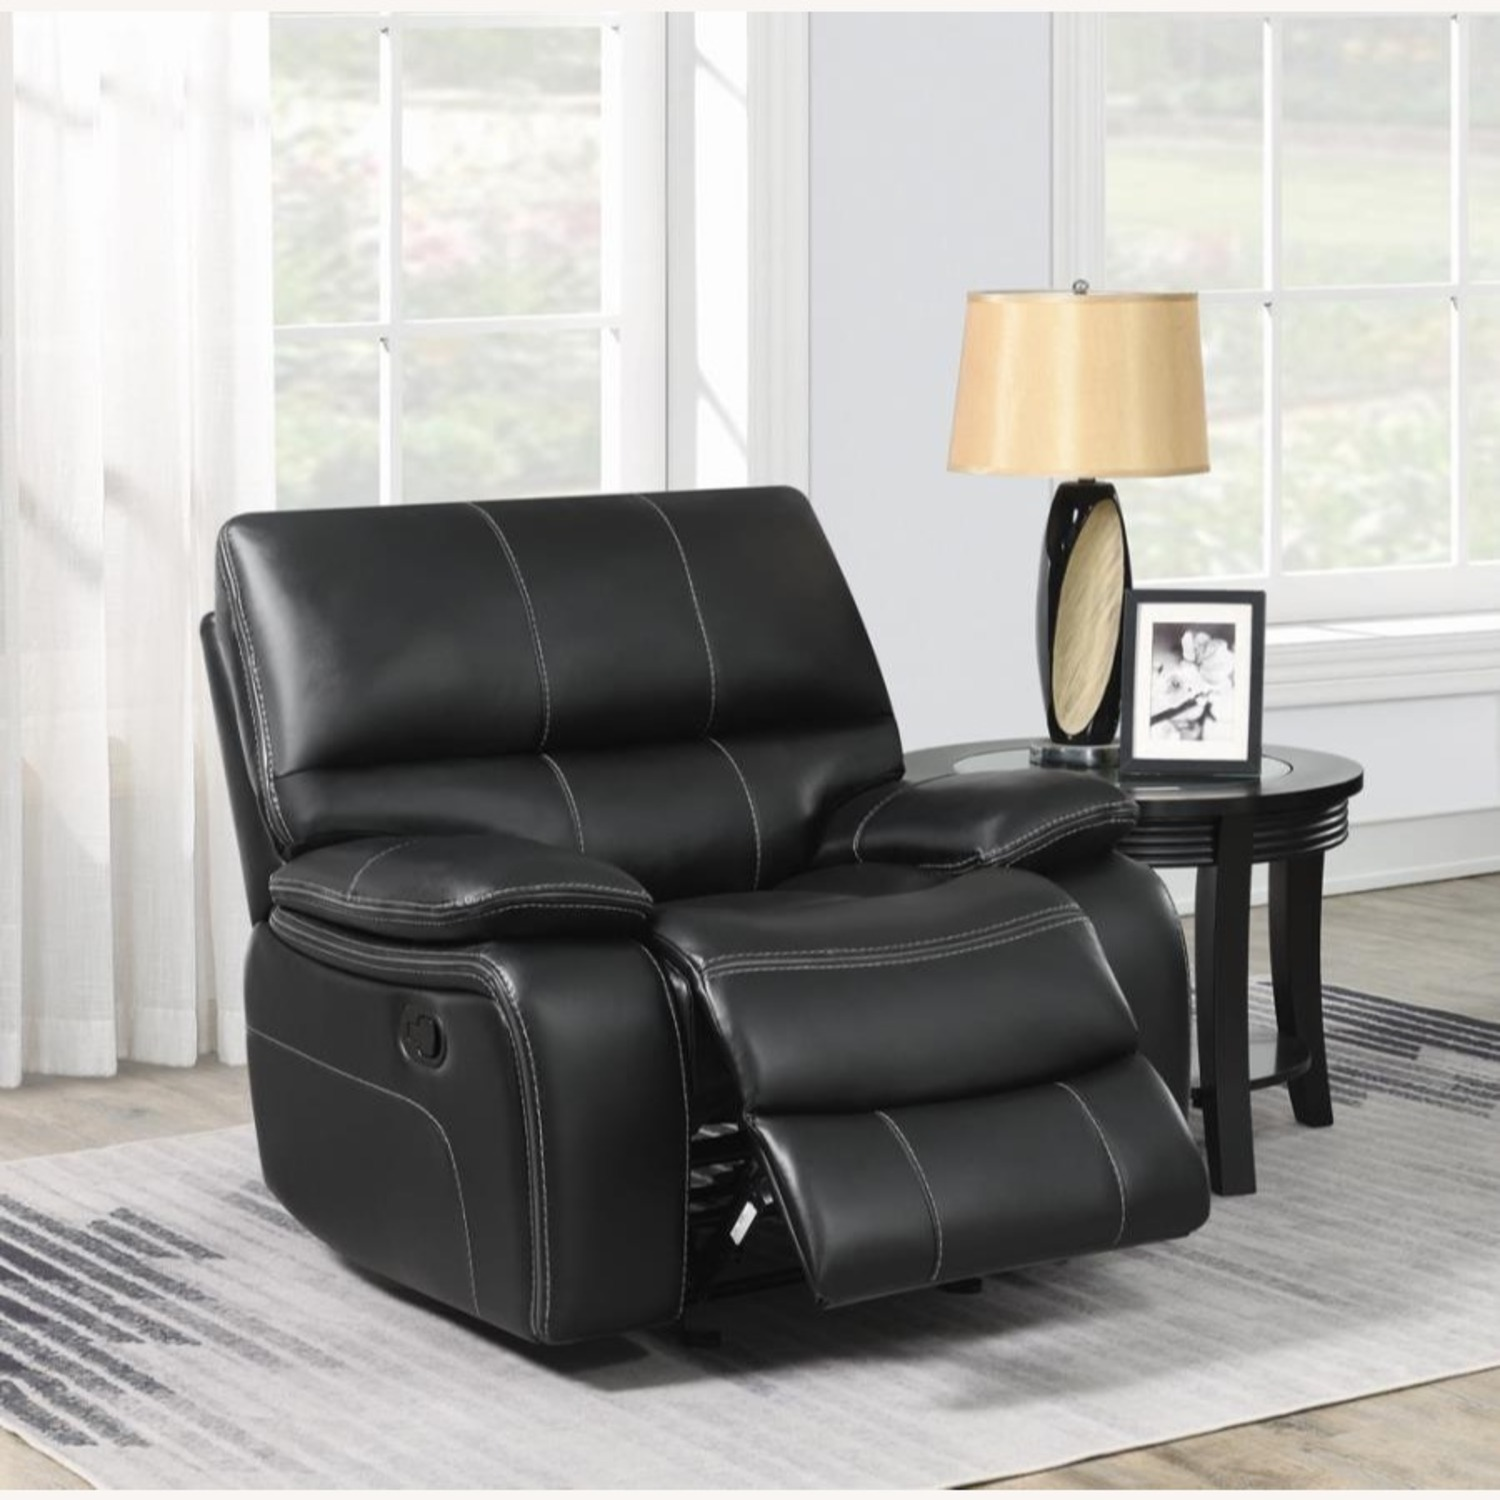 Glider Recliner W/ Scooped Seating In Black Finish - image-4